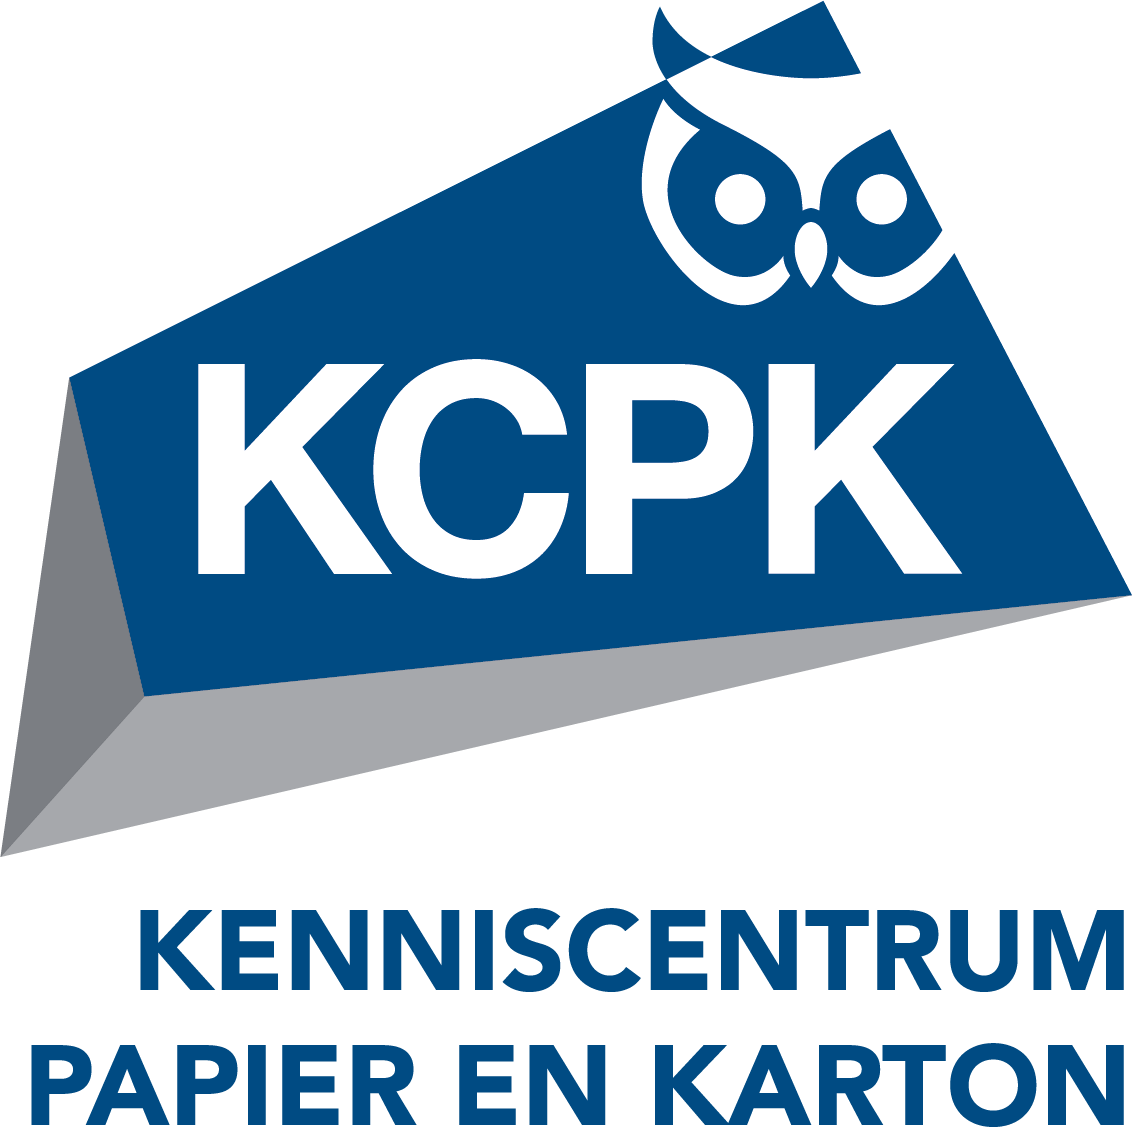 Kenniscentrum Papier en Karton